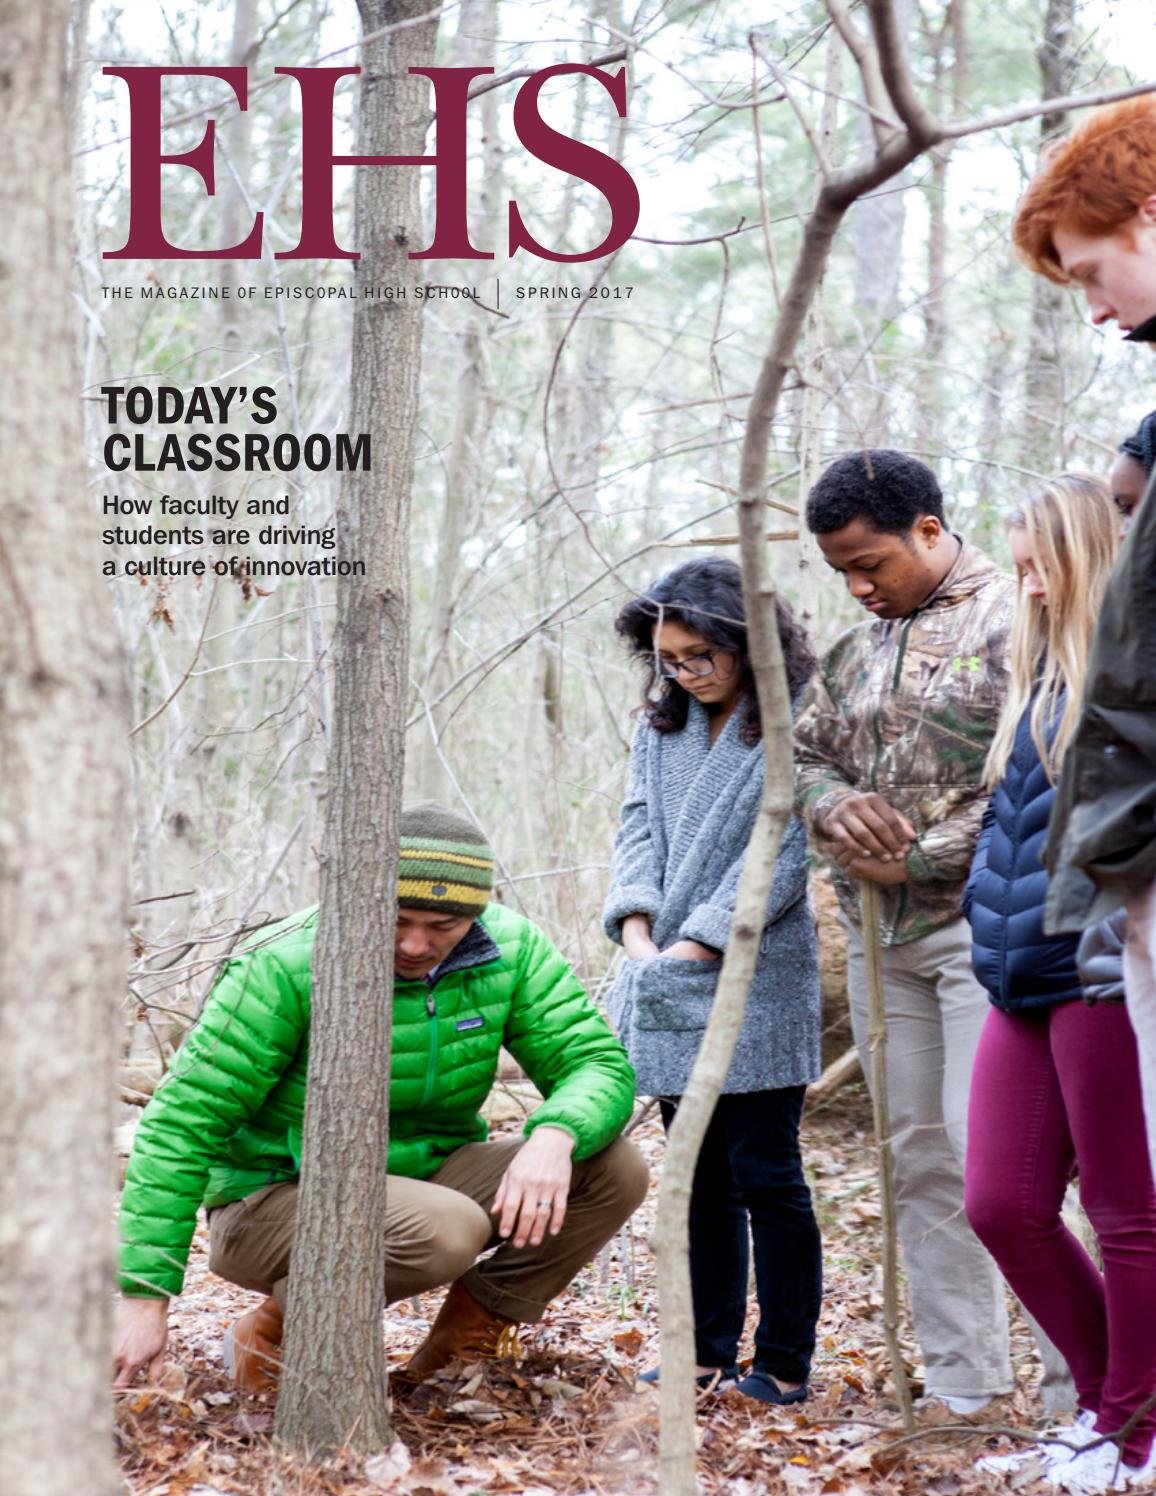 EHS: The Magazine of Episcopal High School (Spring 2017) by